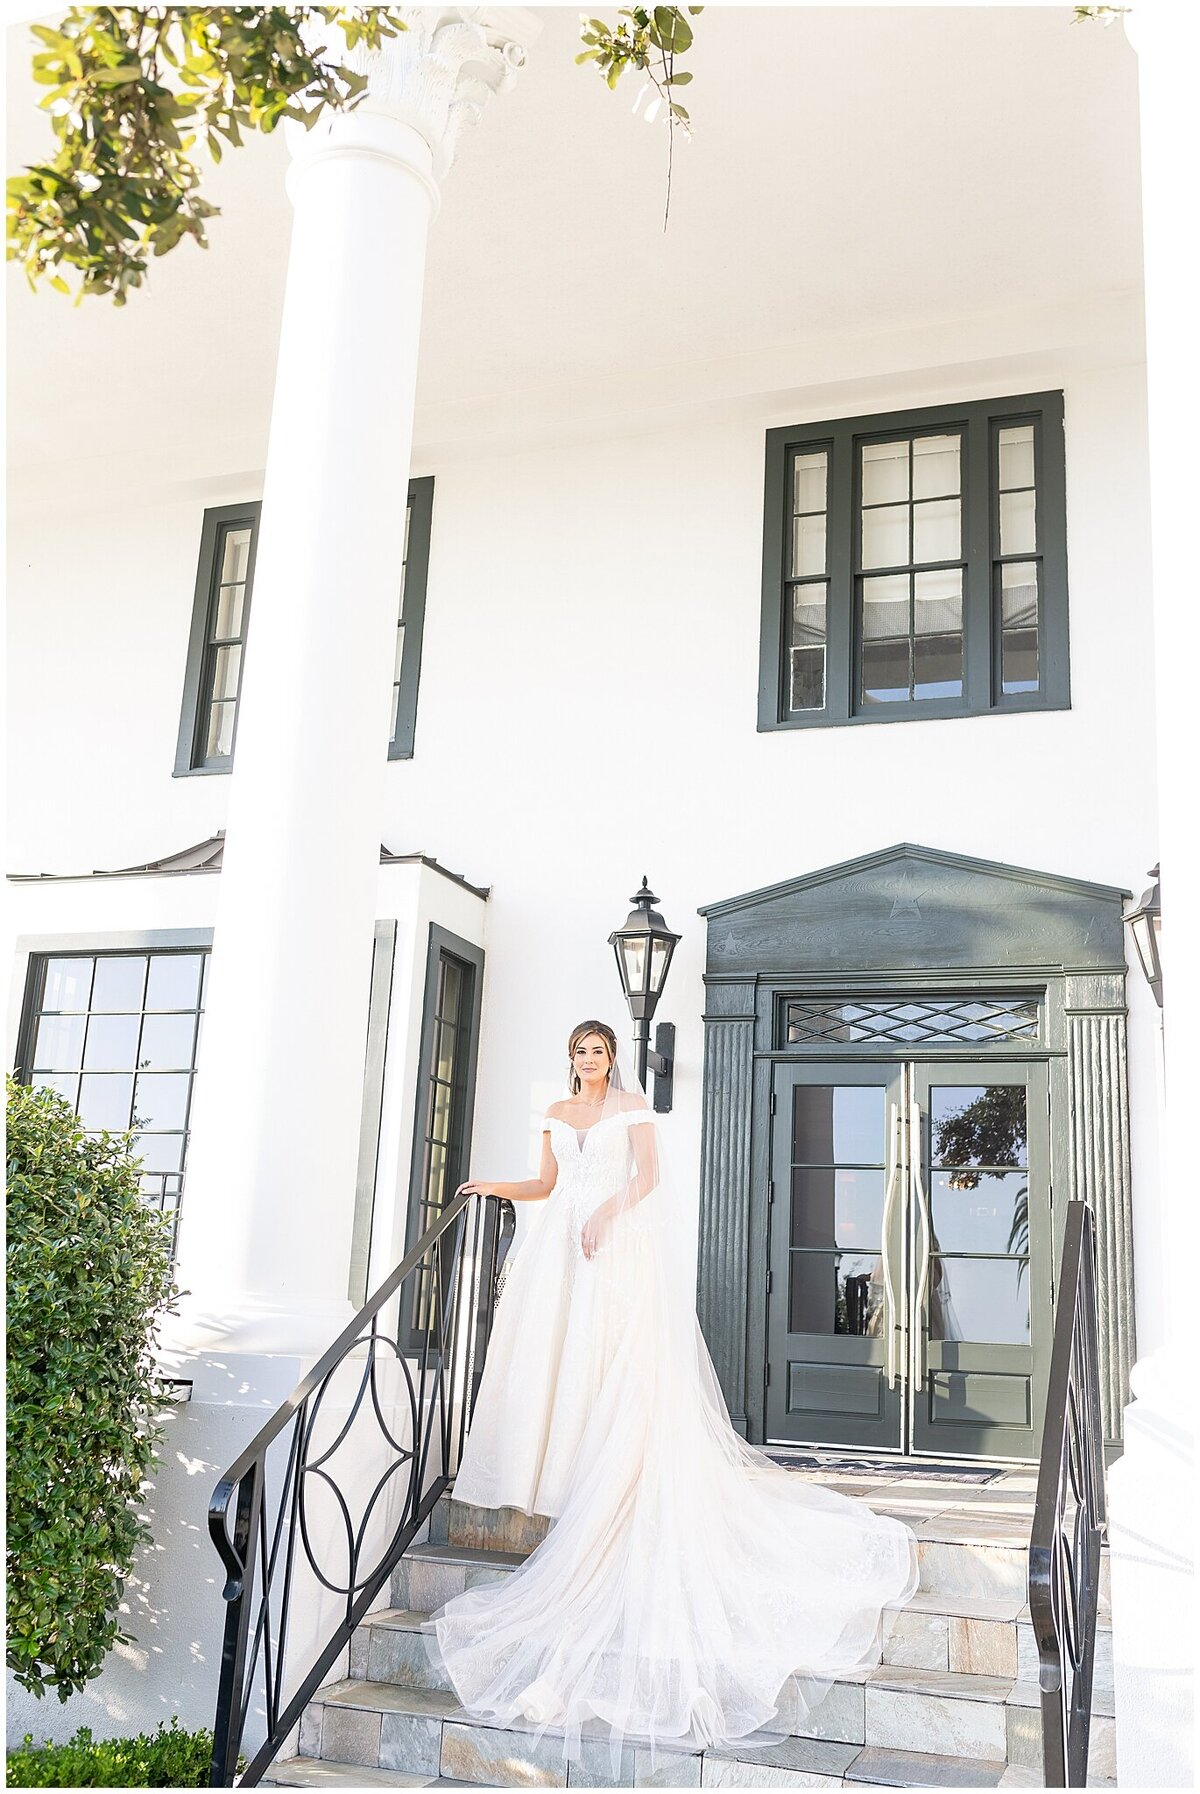 Bridal-Wedding-PortraitsThe-White-House-Hotel-Biloxi1219